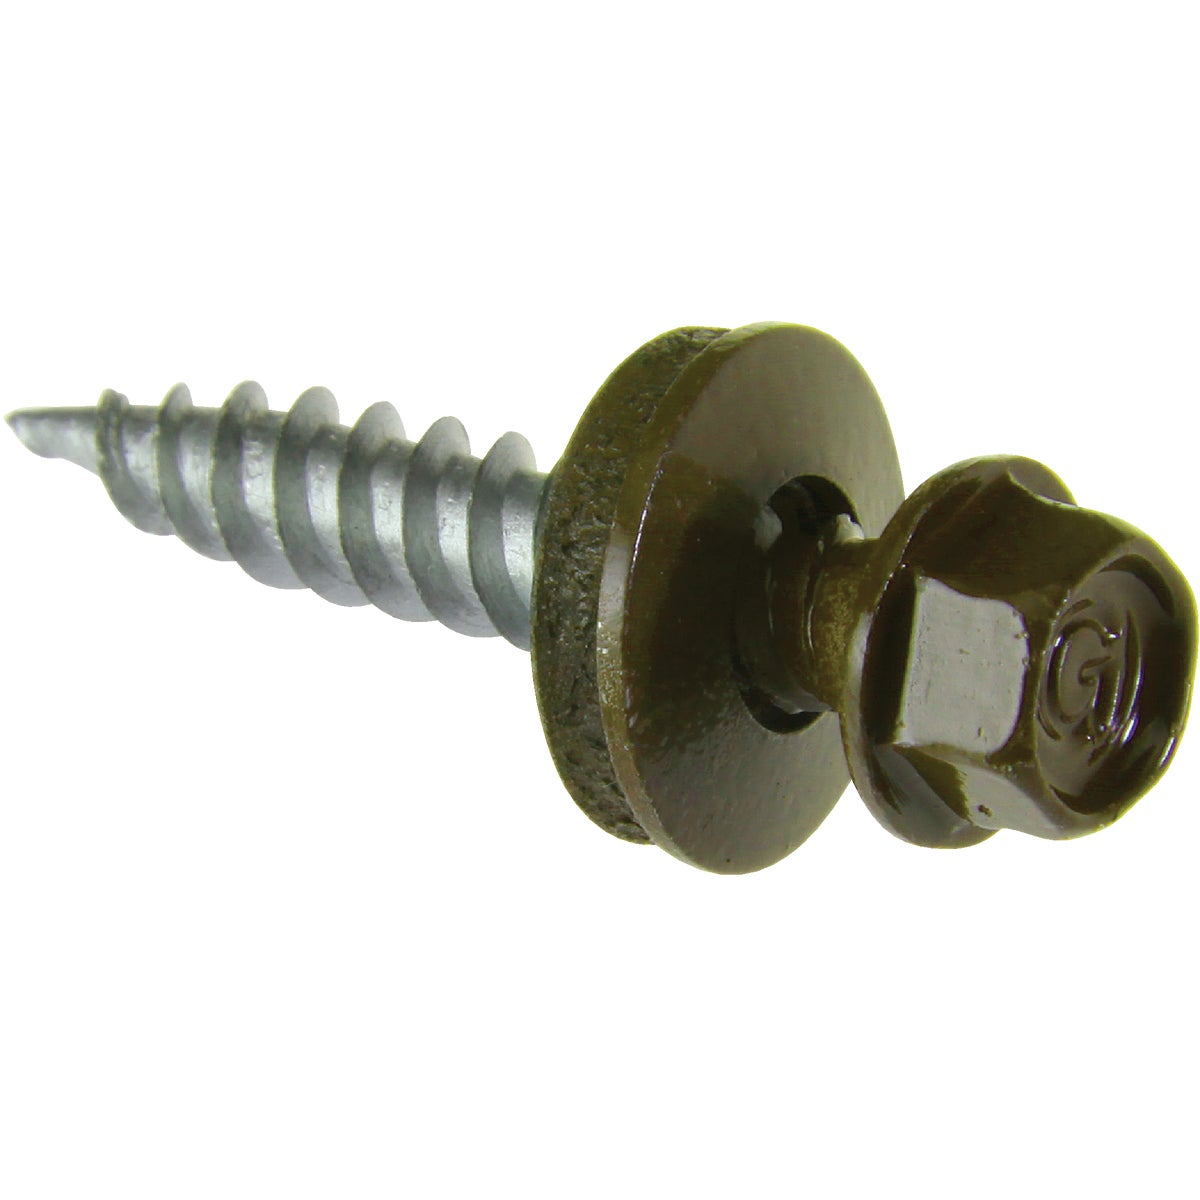 250PC 1-1/2GRN FRM SCREW - 731579 by Primesource